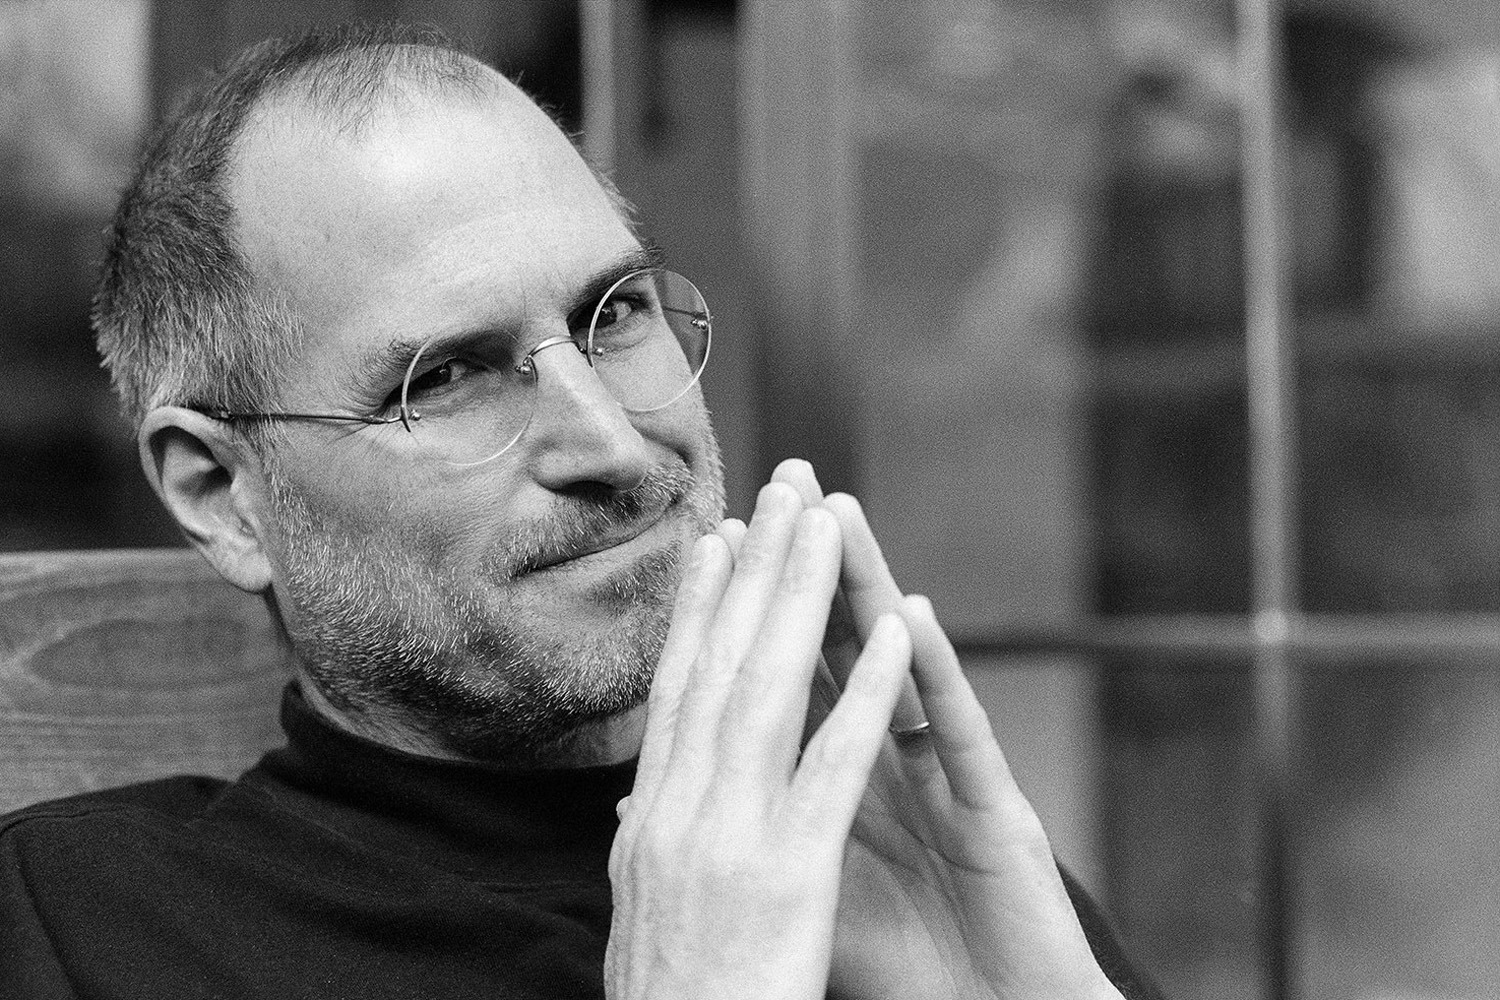 A Tribute To Steve Jobs On His 57th Birthday